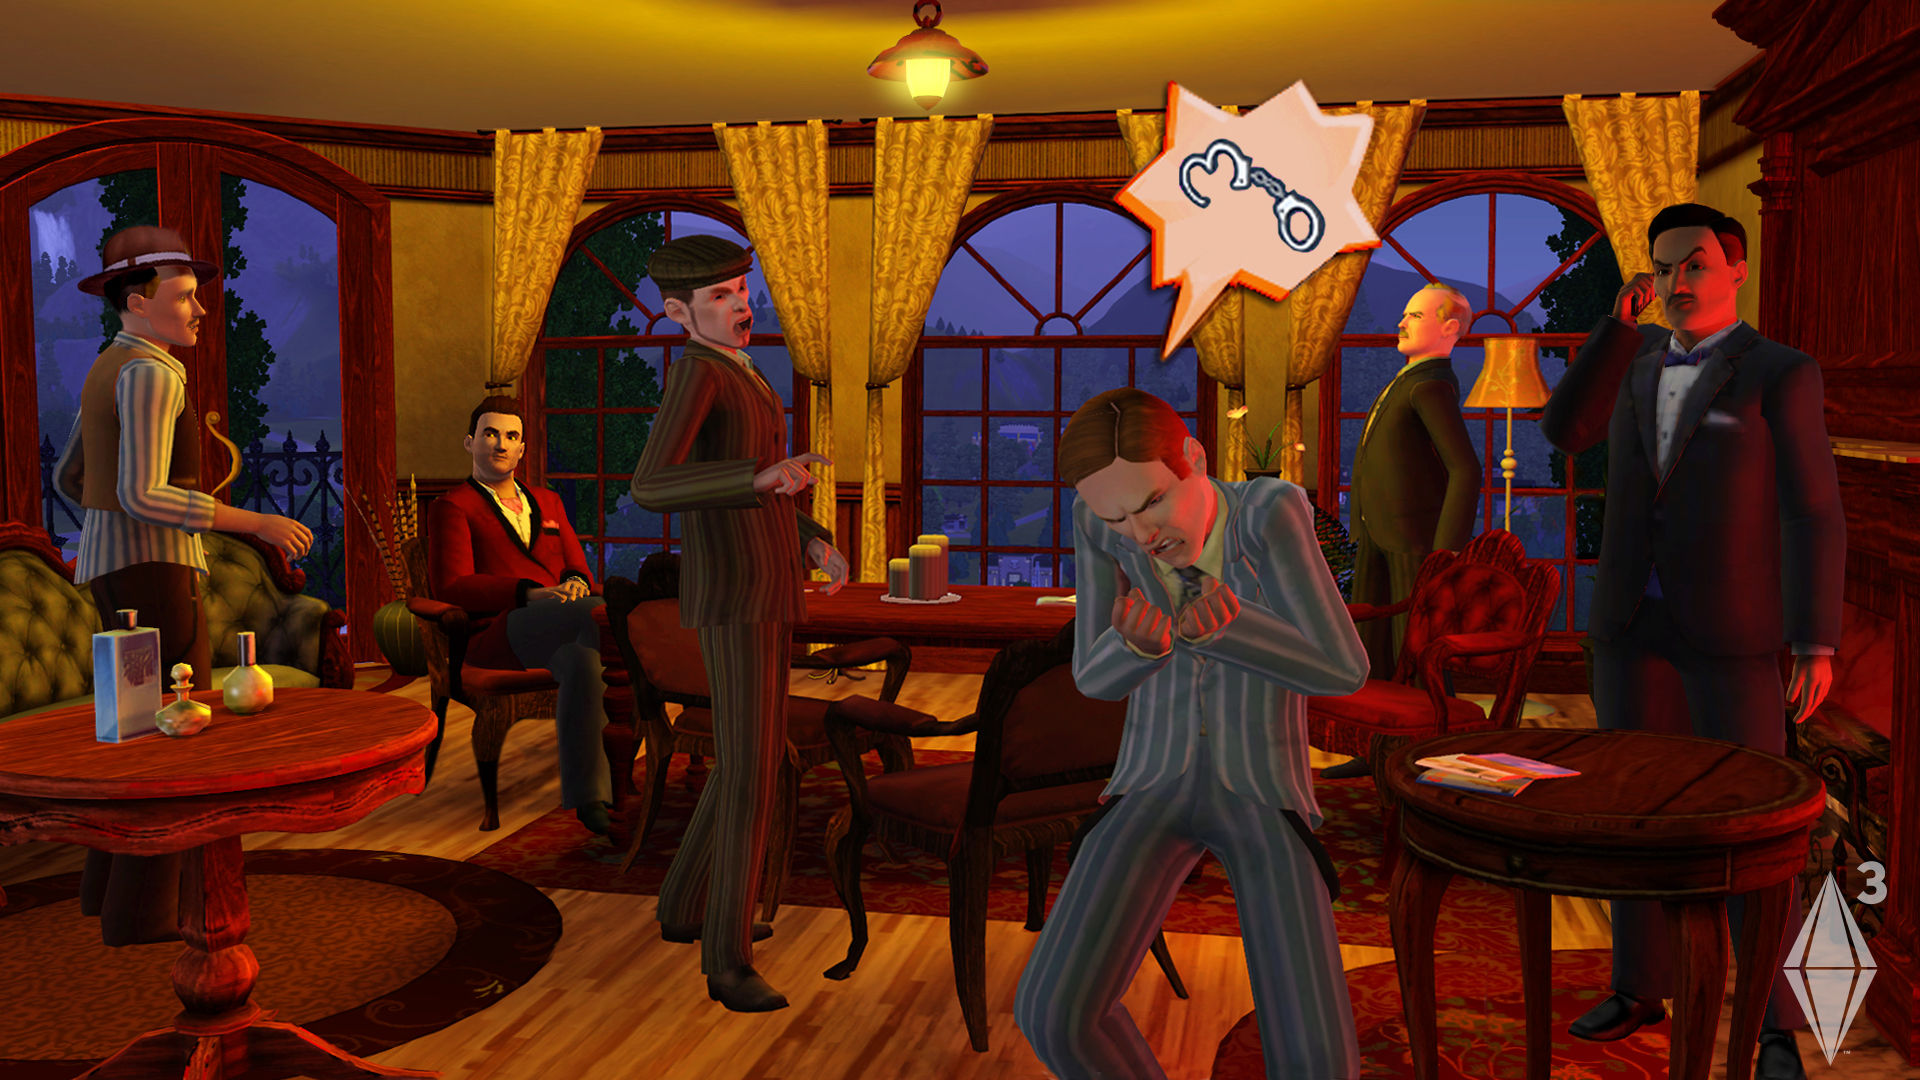 The Sims 3 On Steam